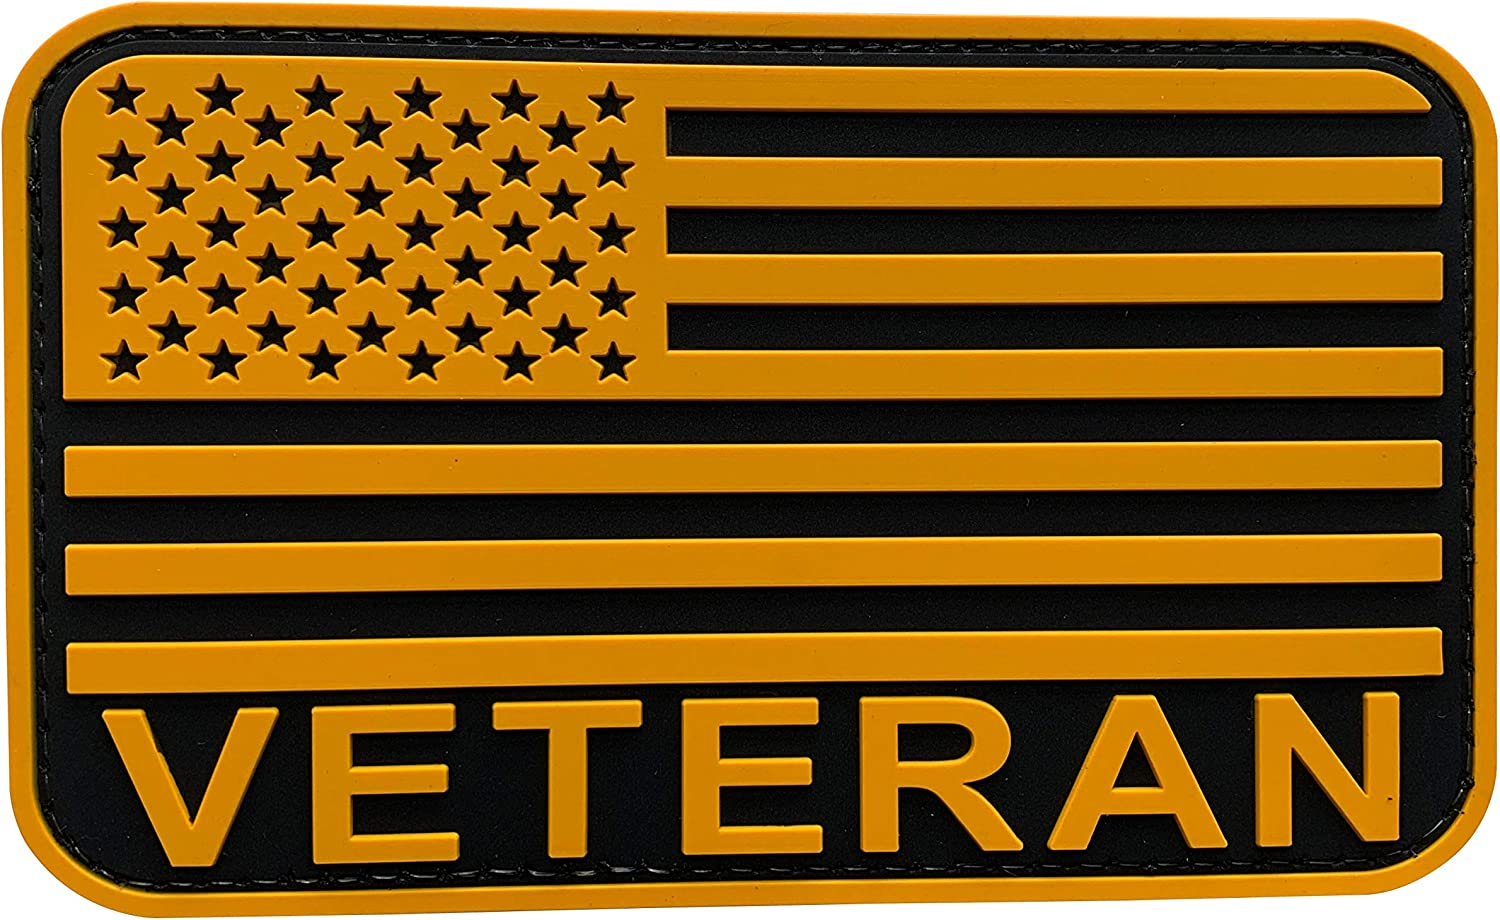 uuKen Large 2021new shipping free shipping Veteran Flag Patch 3x5 and Retir Black Yellow inches Indefinitely